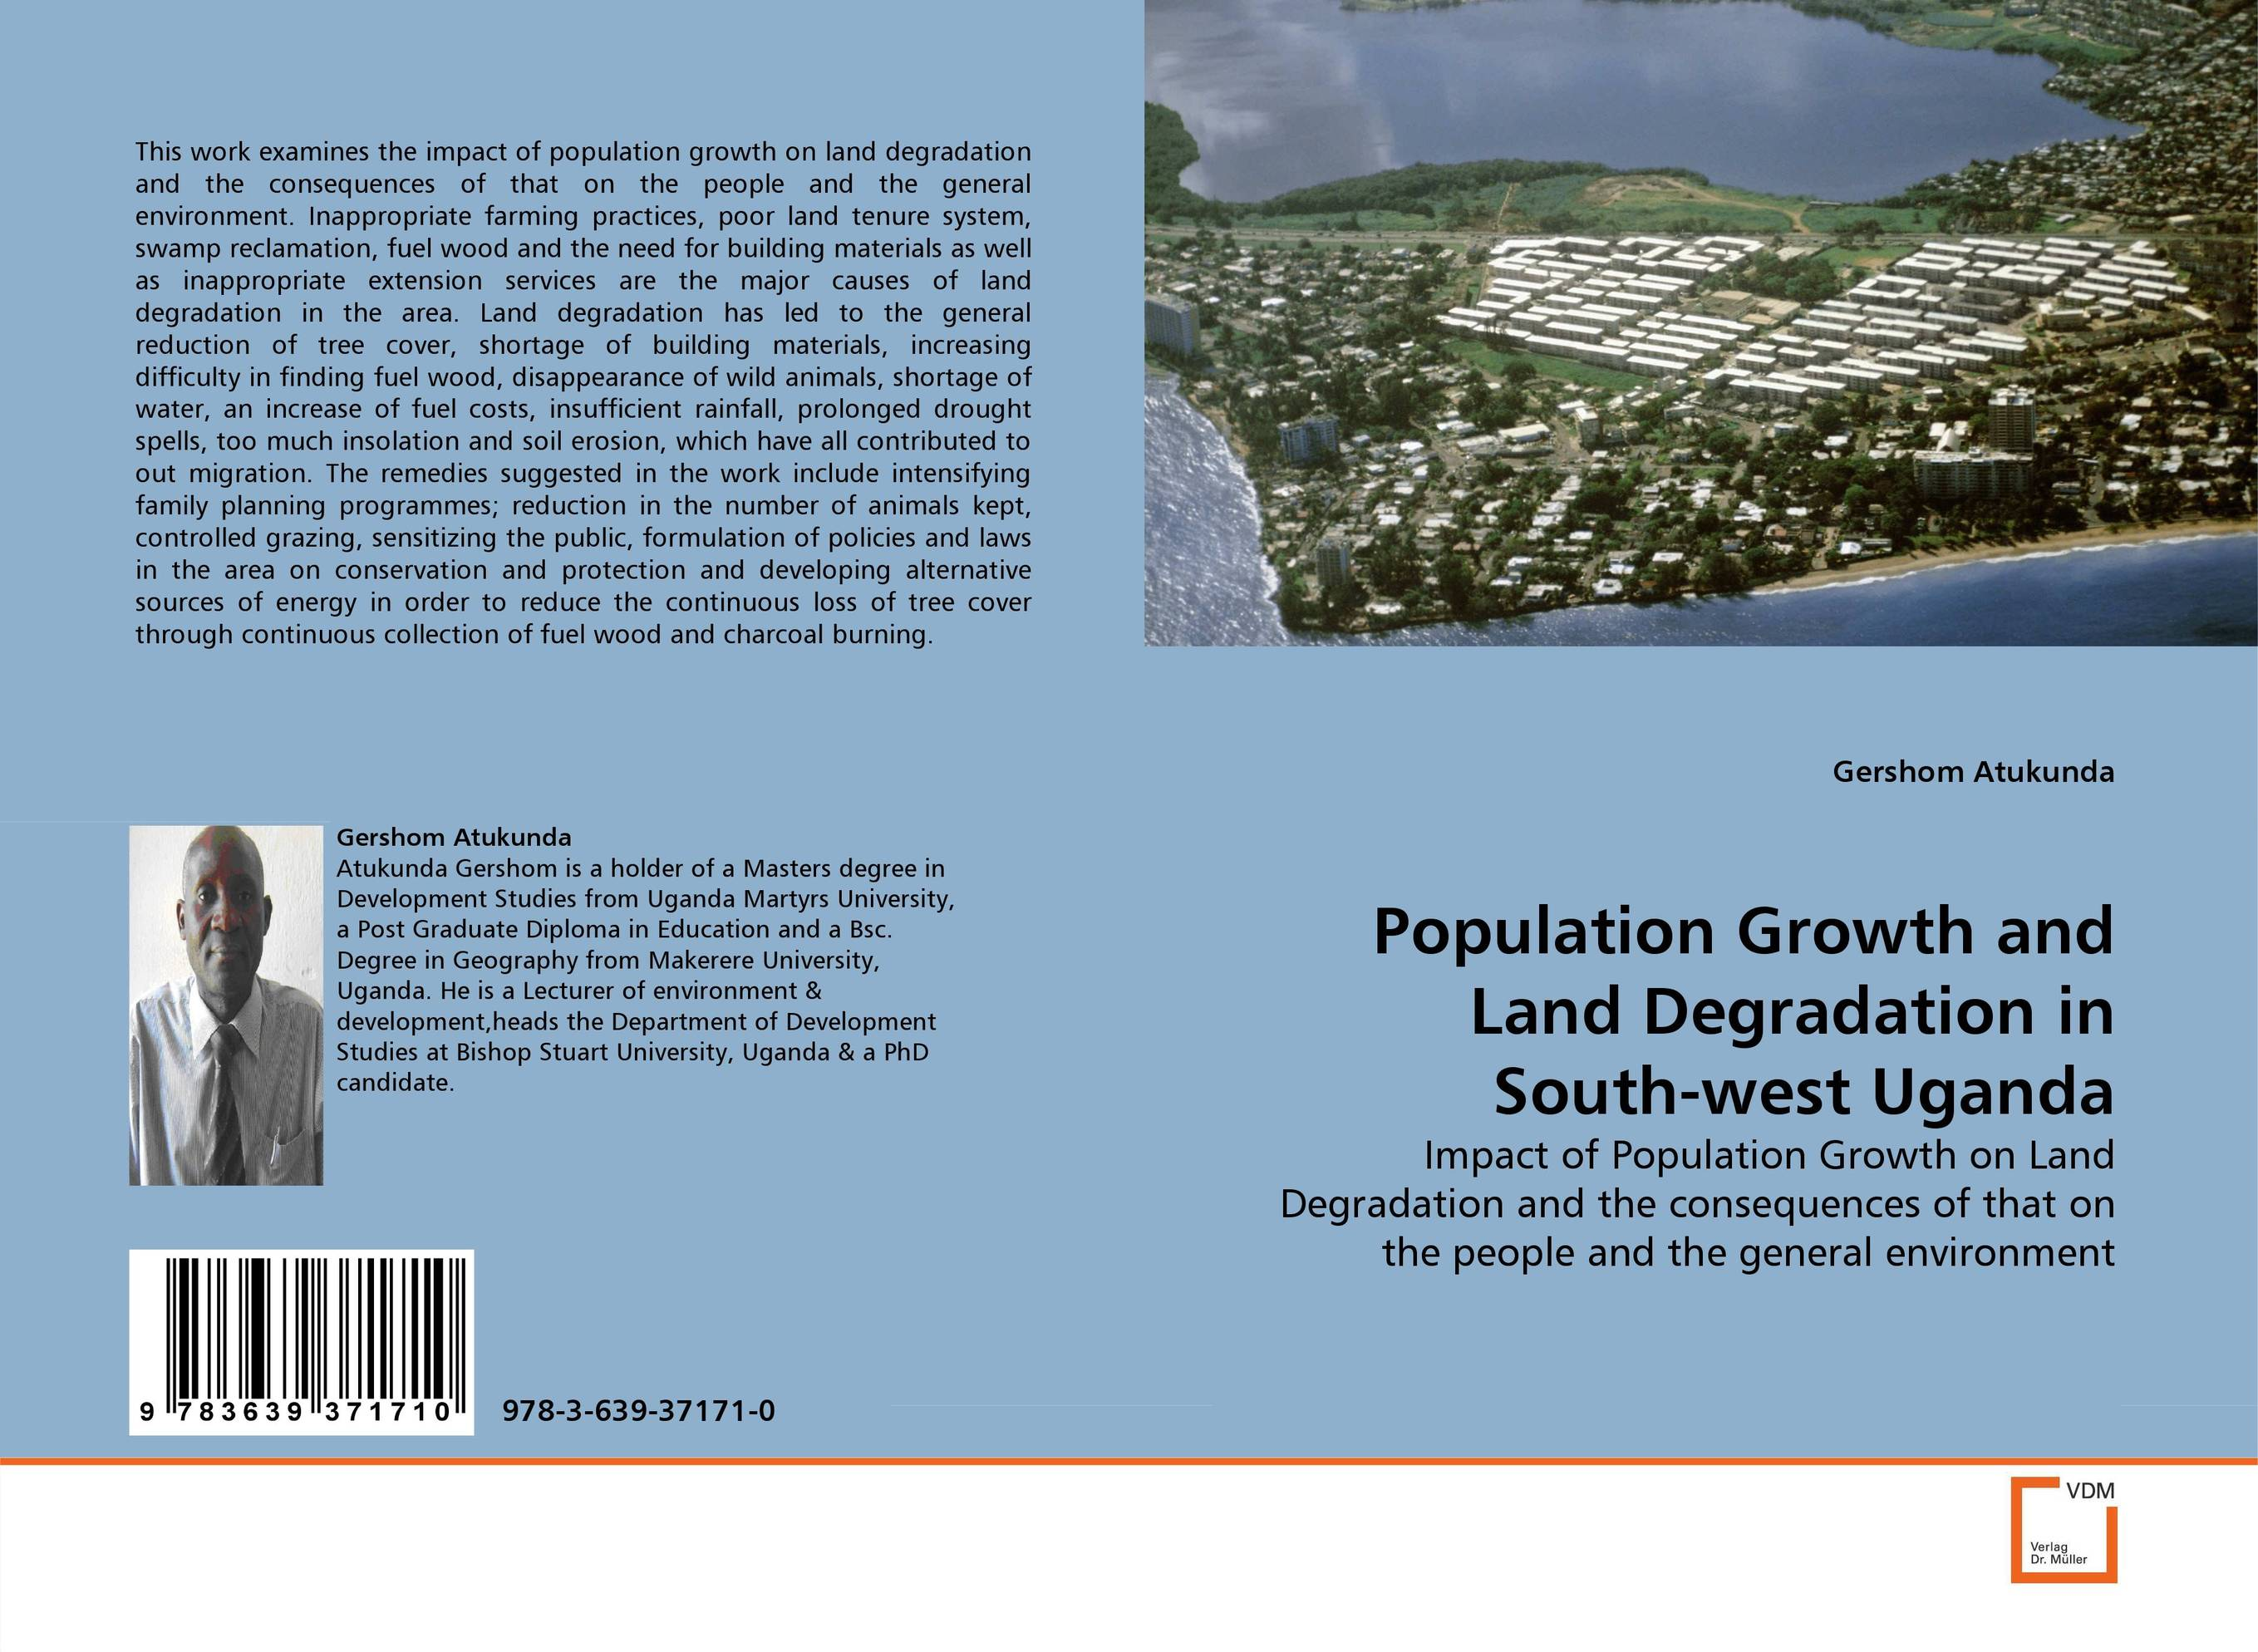 Population Growth and Land Degradation in South-west Uganda land degradation assessment using geospatial technique